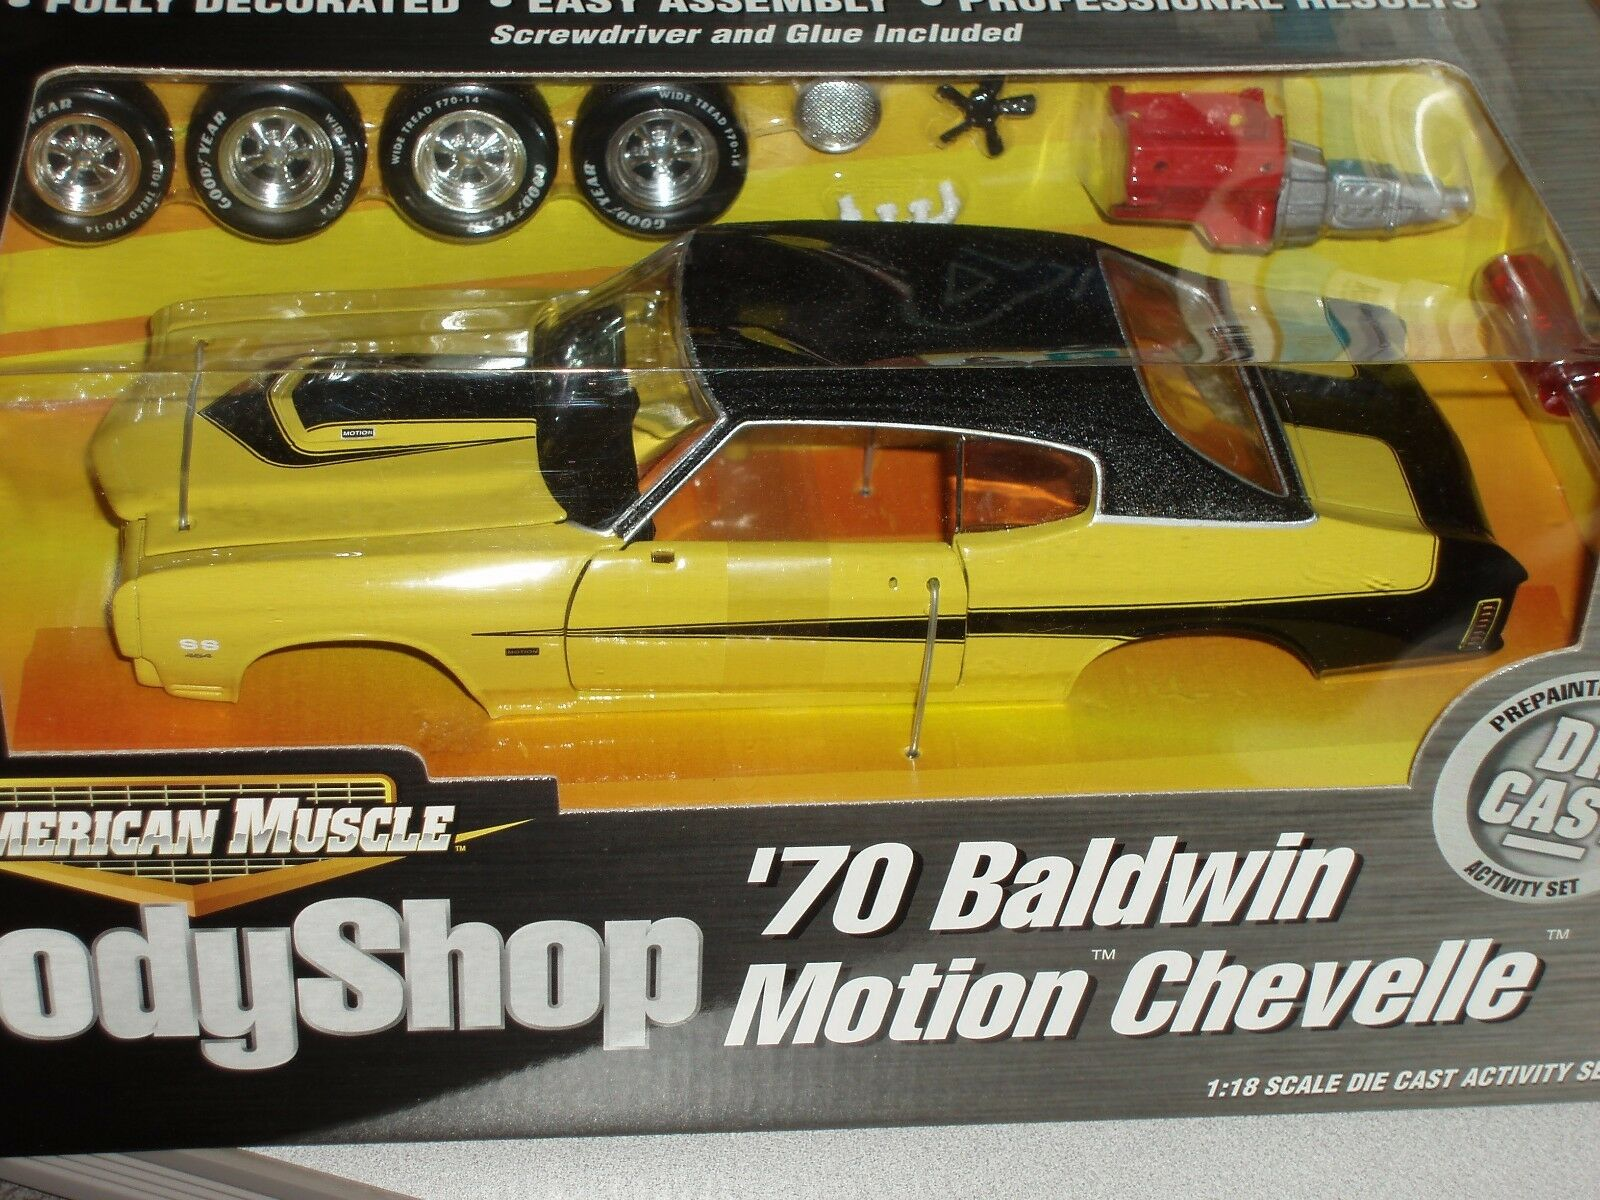 Ertl 1970 Chevrolet Chevelle Baldwin Motion Body Shop Conjunto Modelo Kit 1 18 muy difícil de encontrar